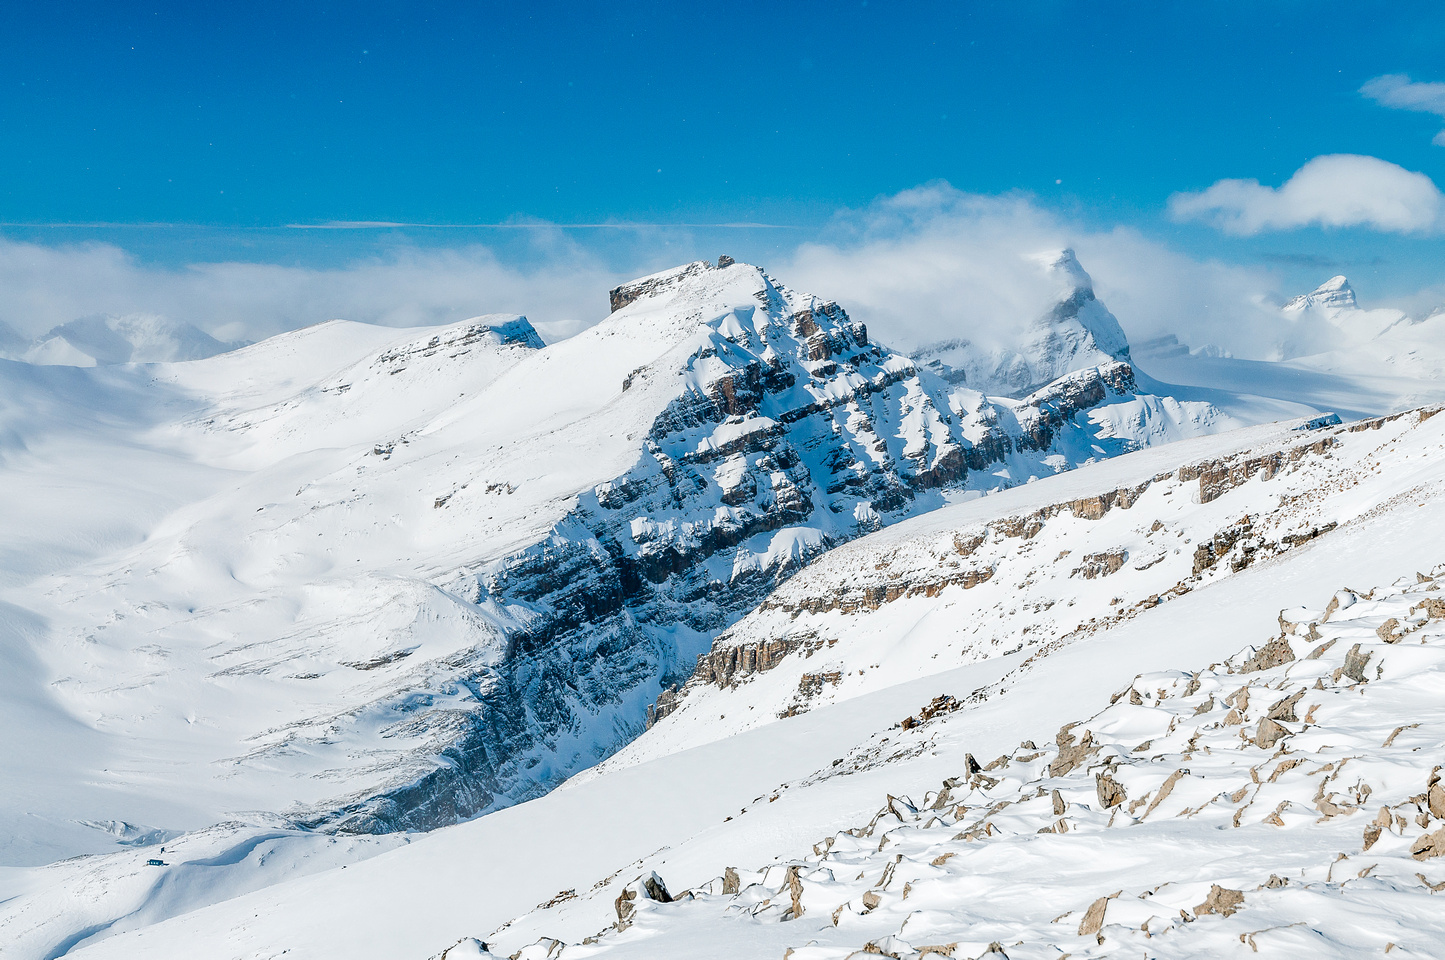 Looking over the tiny Peyto Hut (lower left) at one of the toughest Wapta peaks, Peyto Peak.